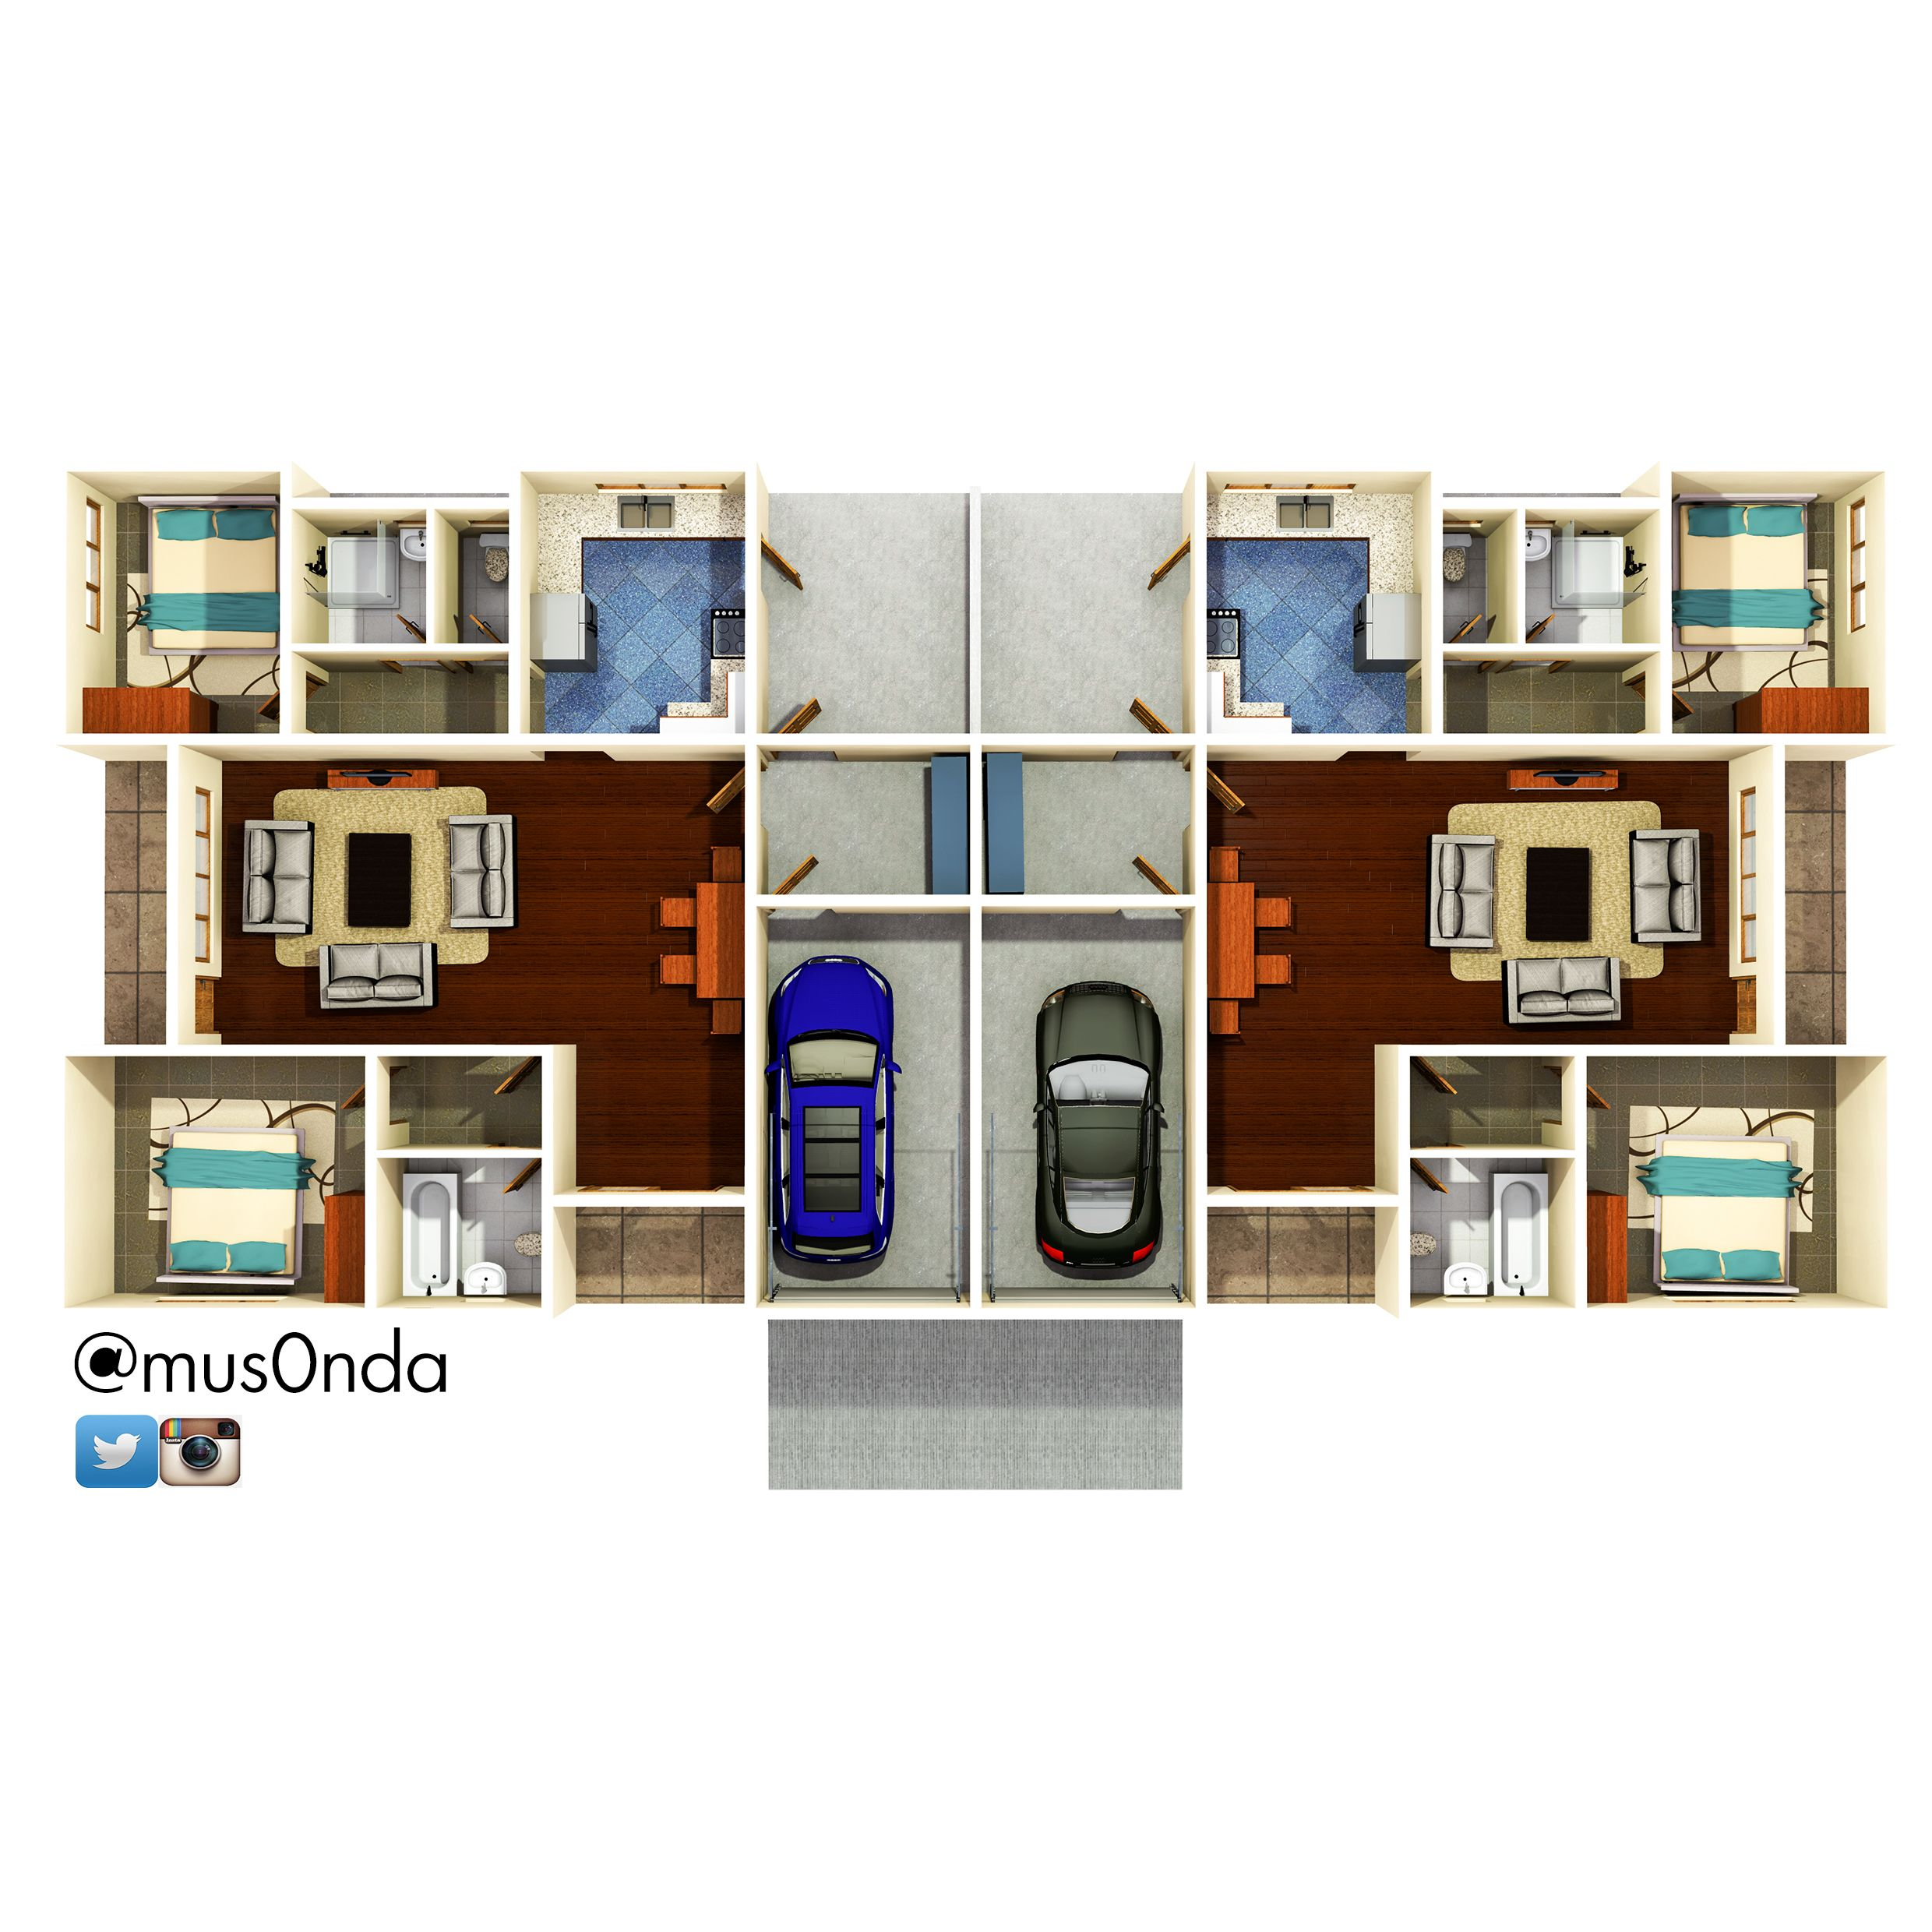 Semi Detached House 2 Bedroom Two Bedroom House Master Bedroom Wall Decor 2 Bedroom Apartment